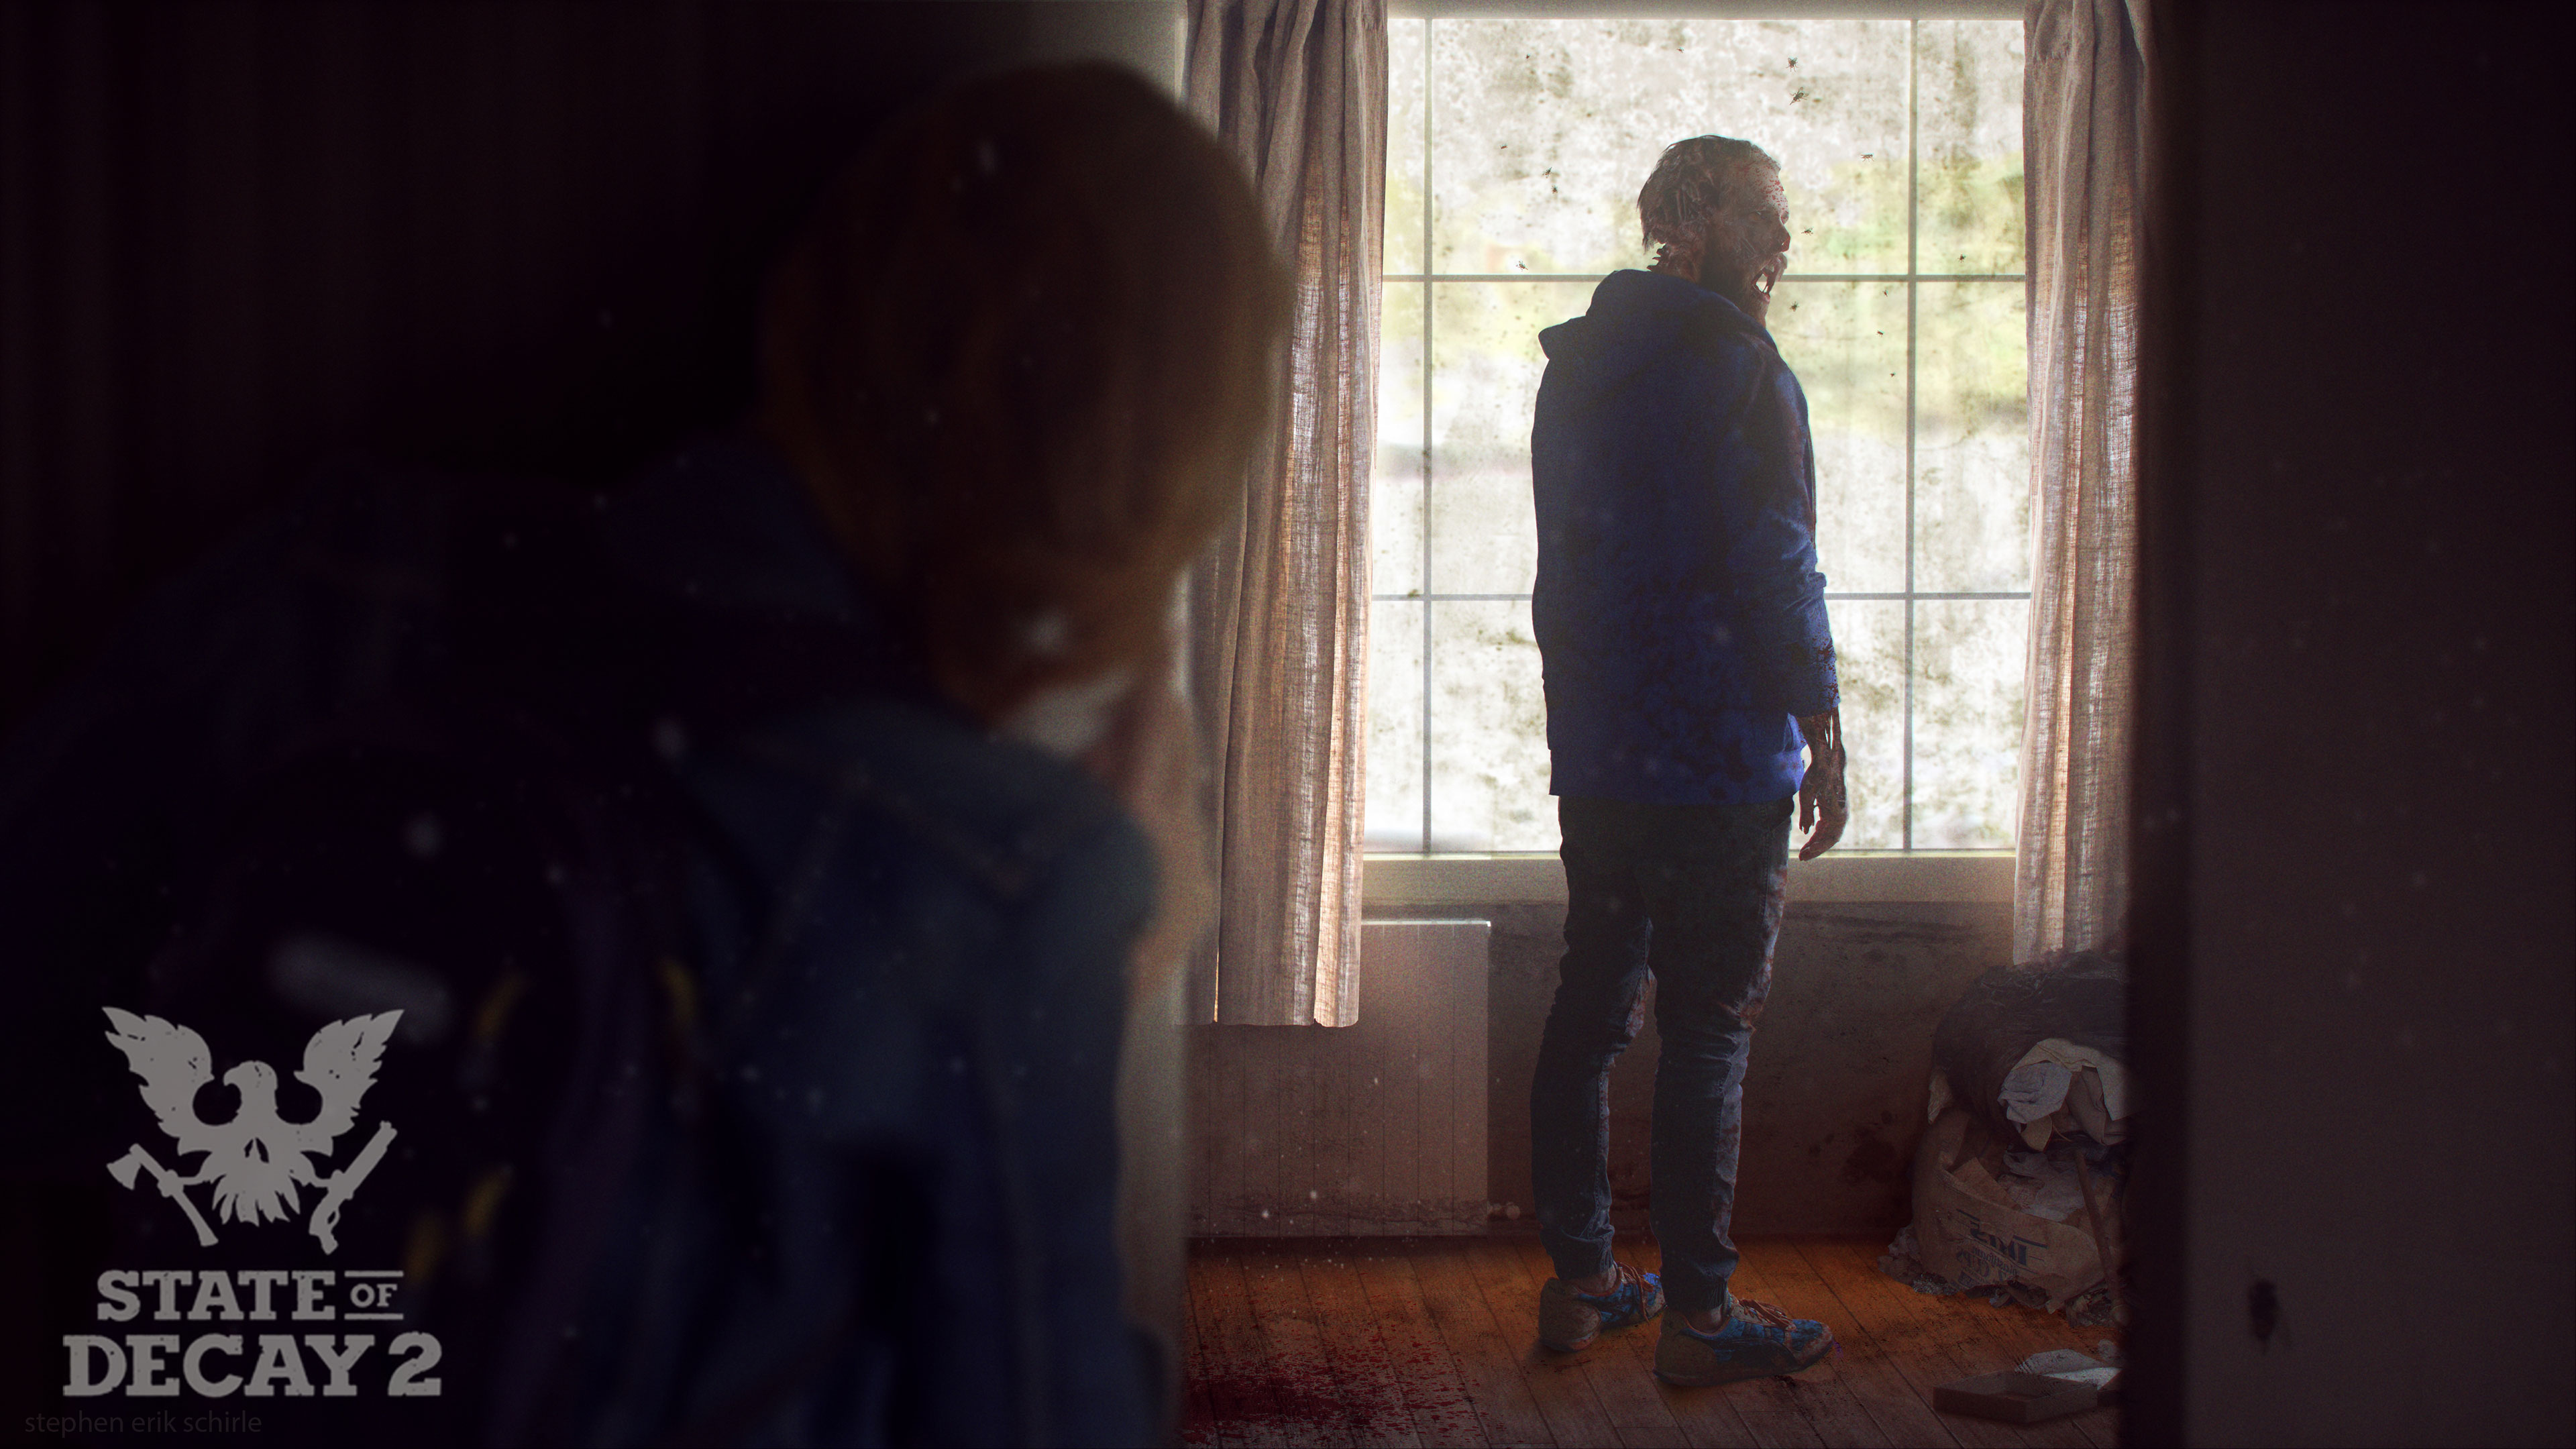 State Of Decay 2 Wallpapers In Ultra Hd 4k Gameranx